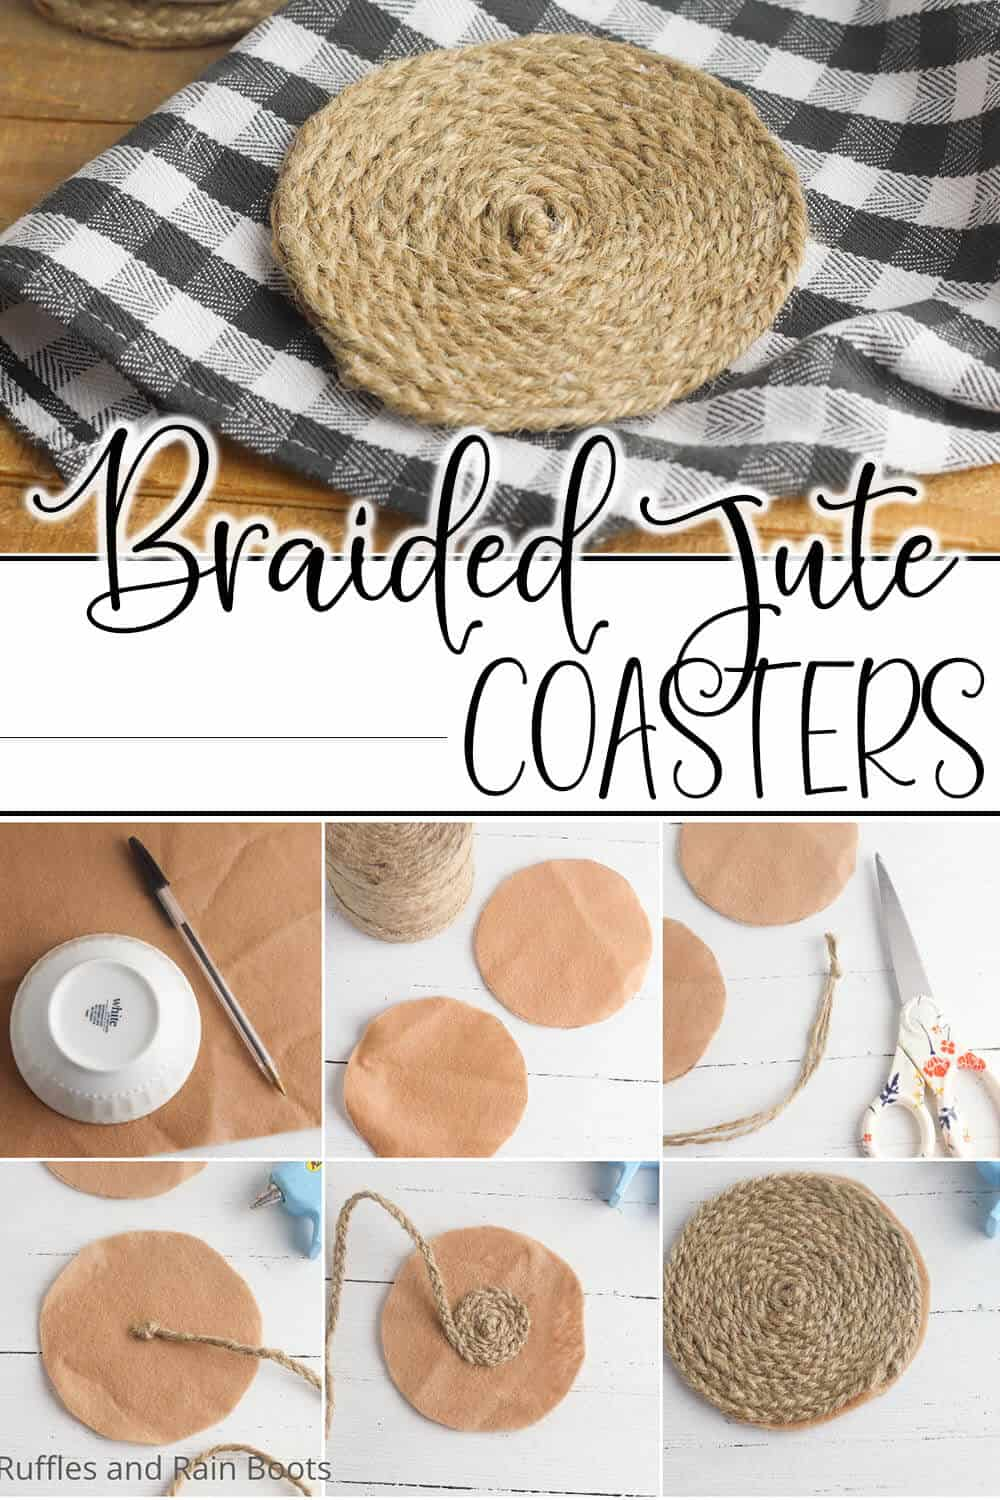 easy handmade gift idea of rolled jute coasters with text which reads braided jute coasters